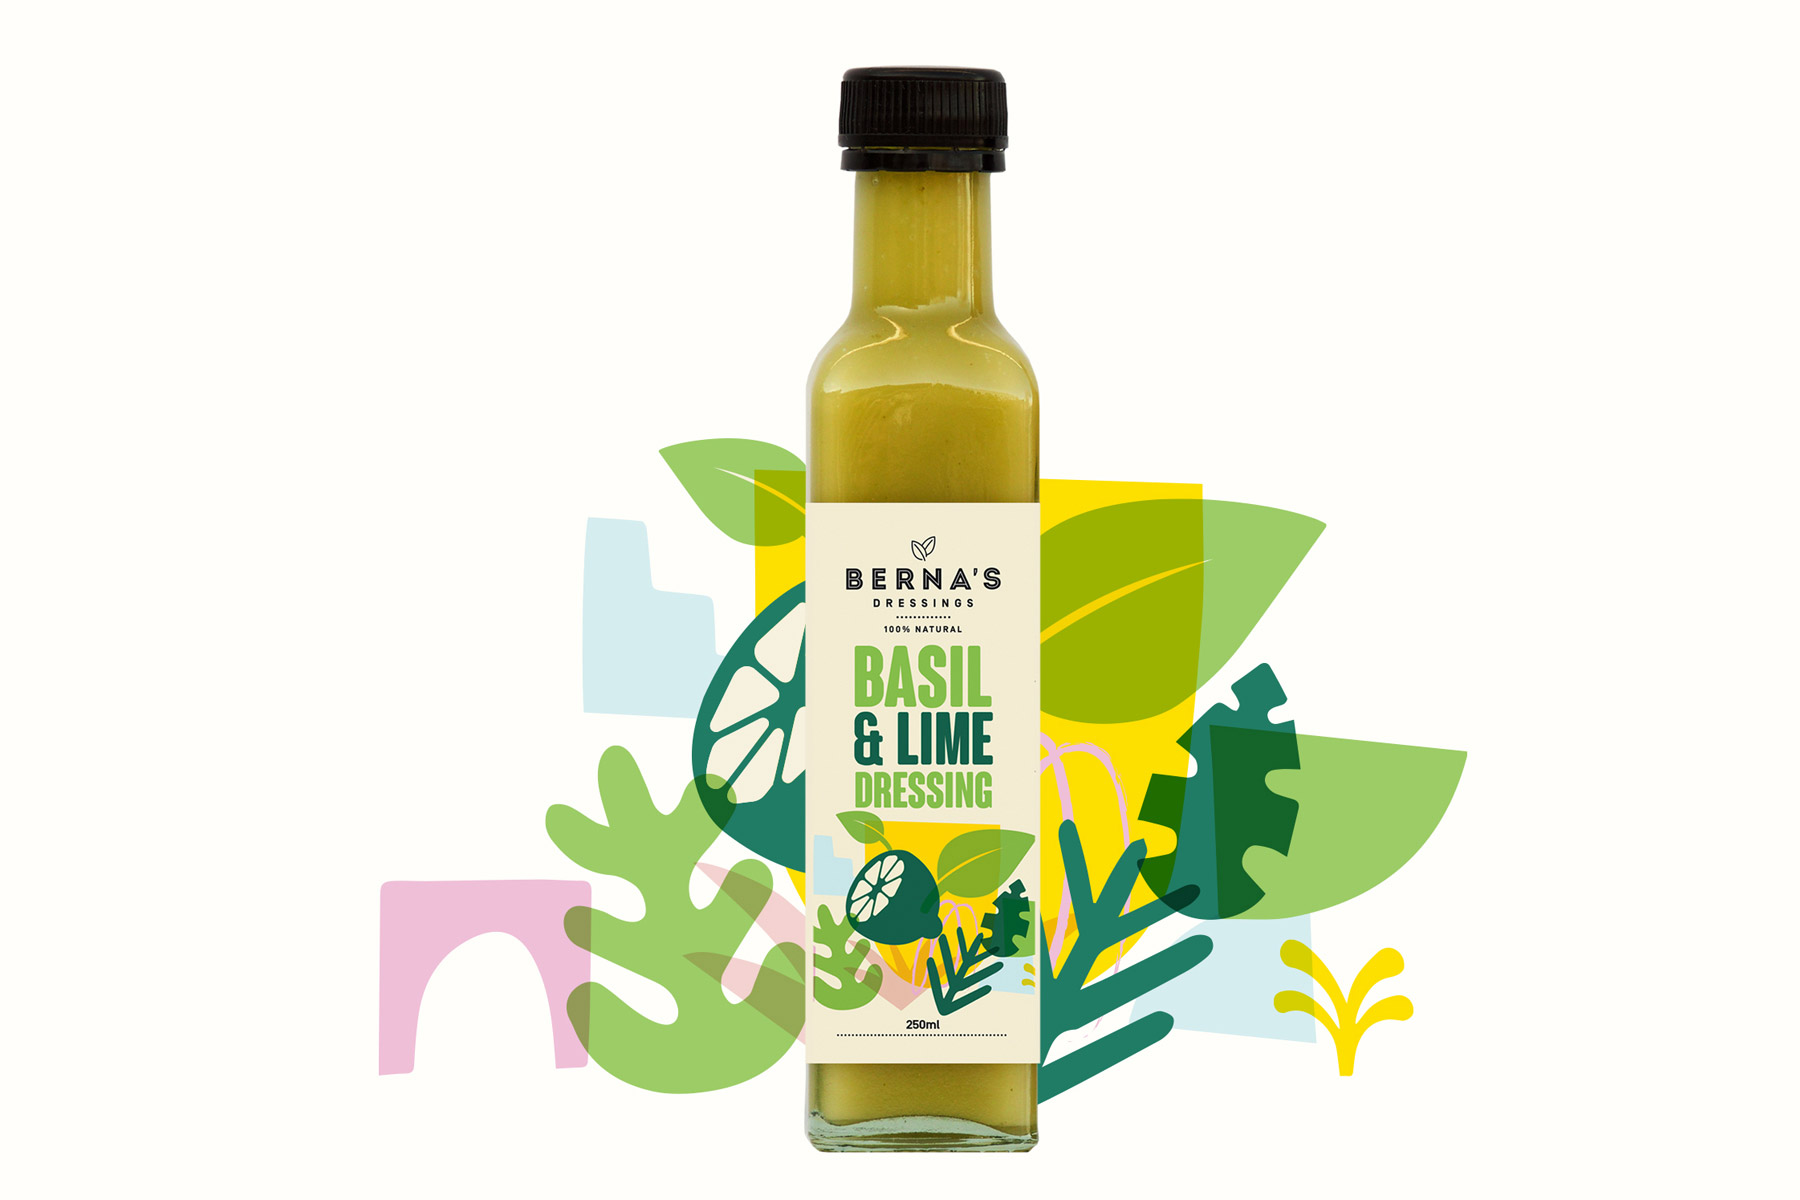 Berna's Dressings  revert design